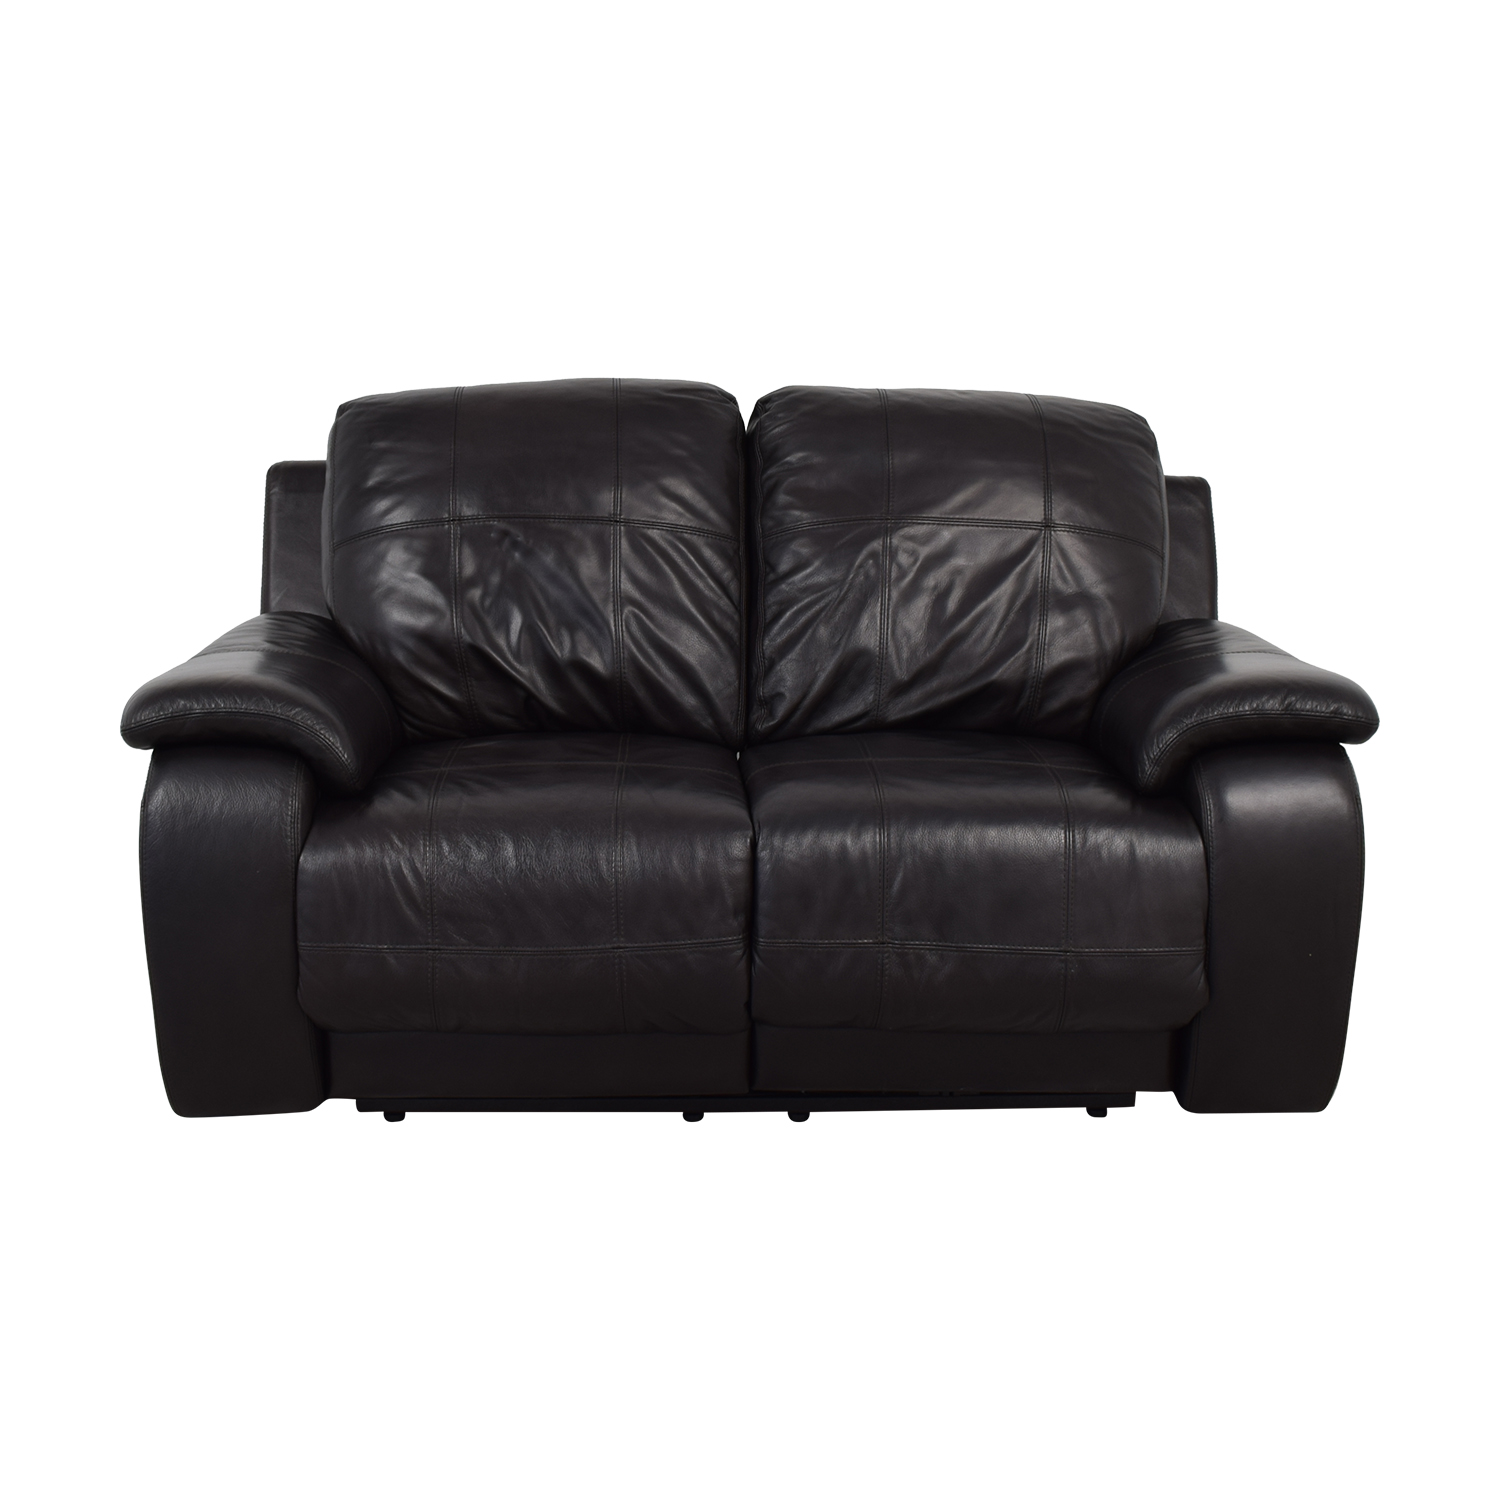 Raymour & Flanigan Raymour & Flanigan Black Power Recliner Loveseat dimensions